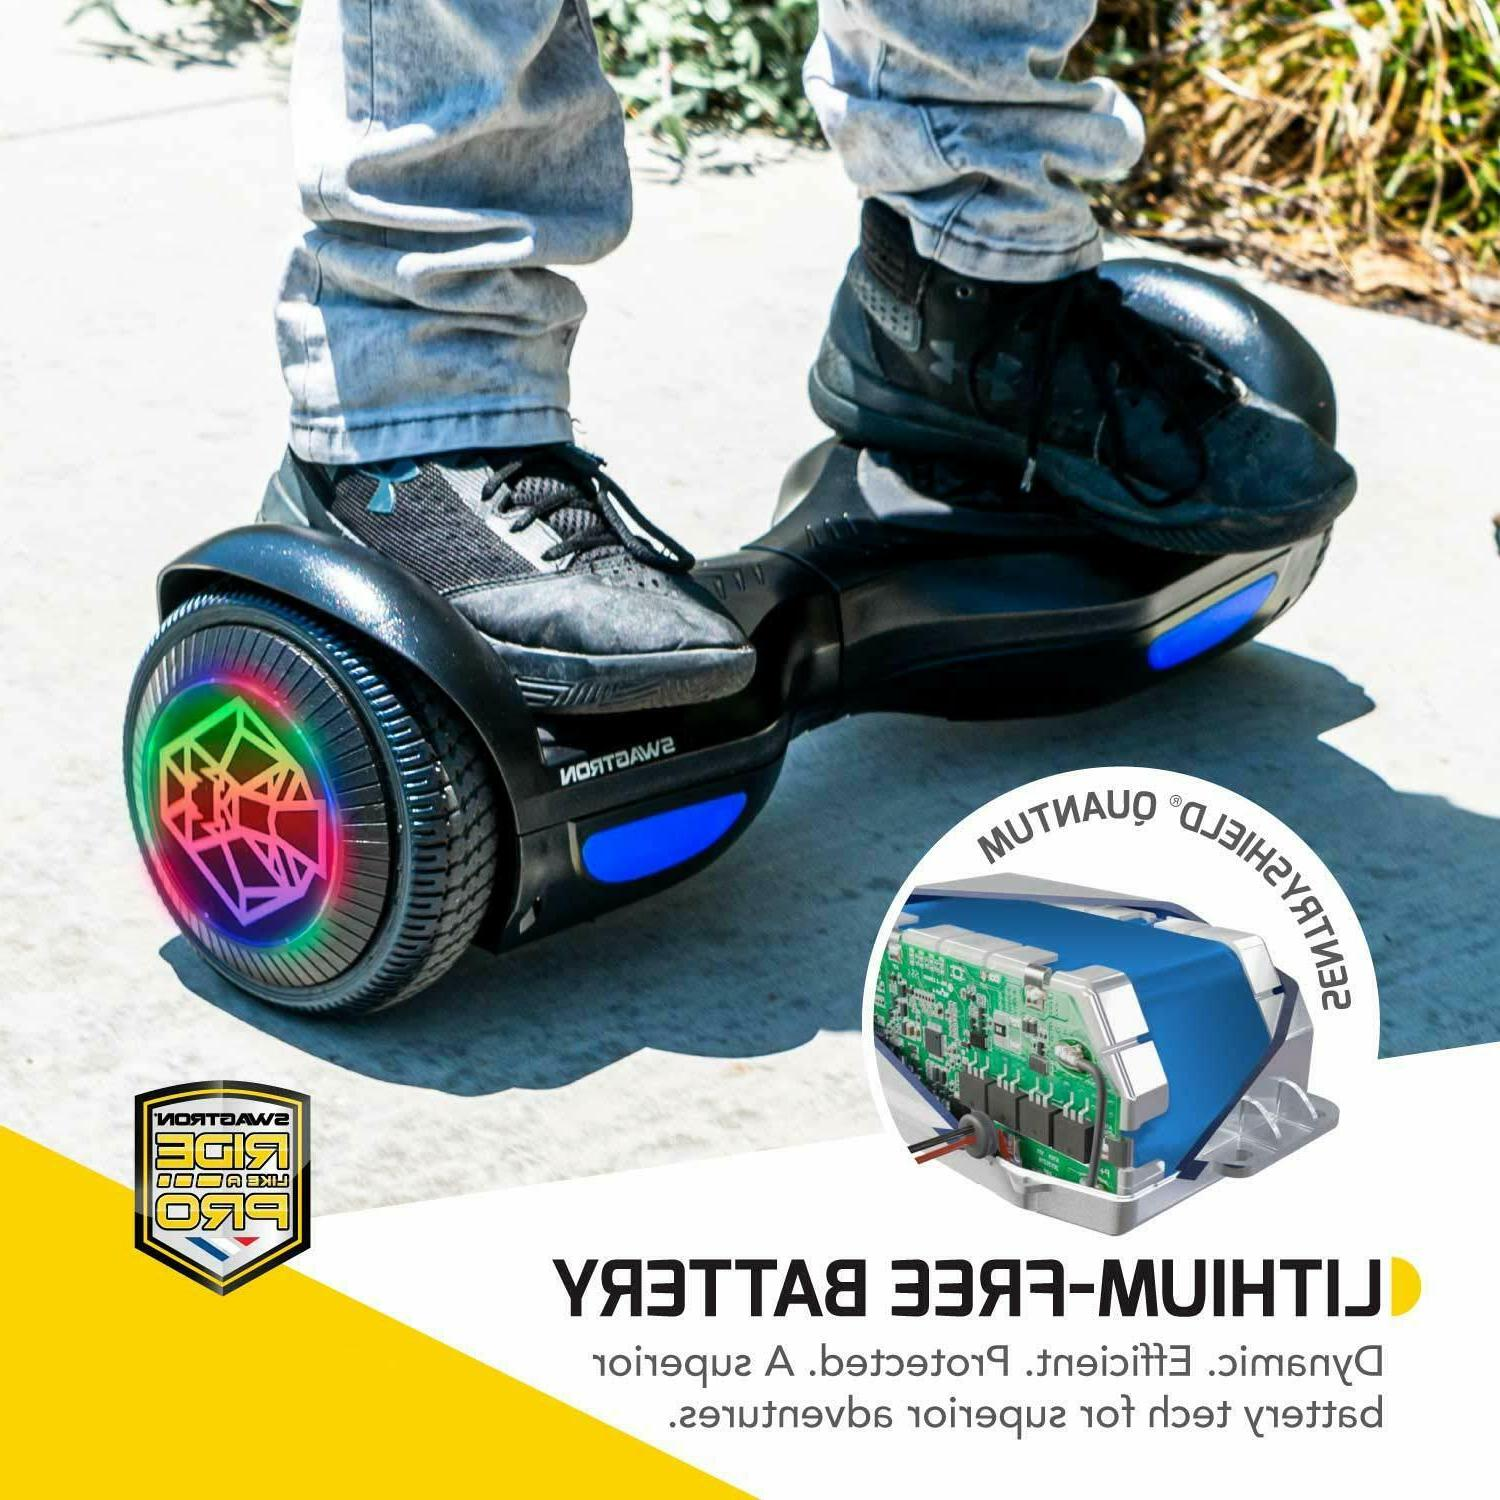 Swagtron Hoverboard 250W Lithium-Free Battery w/